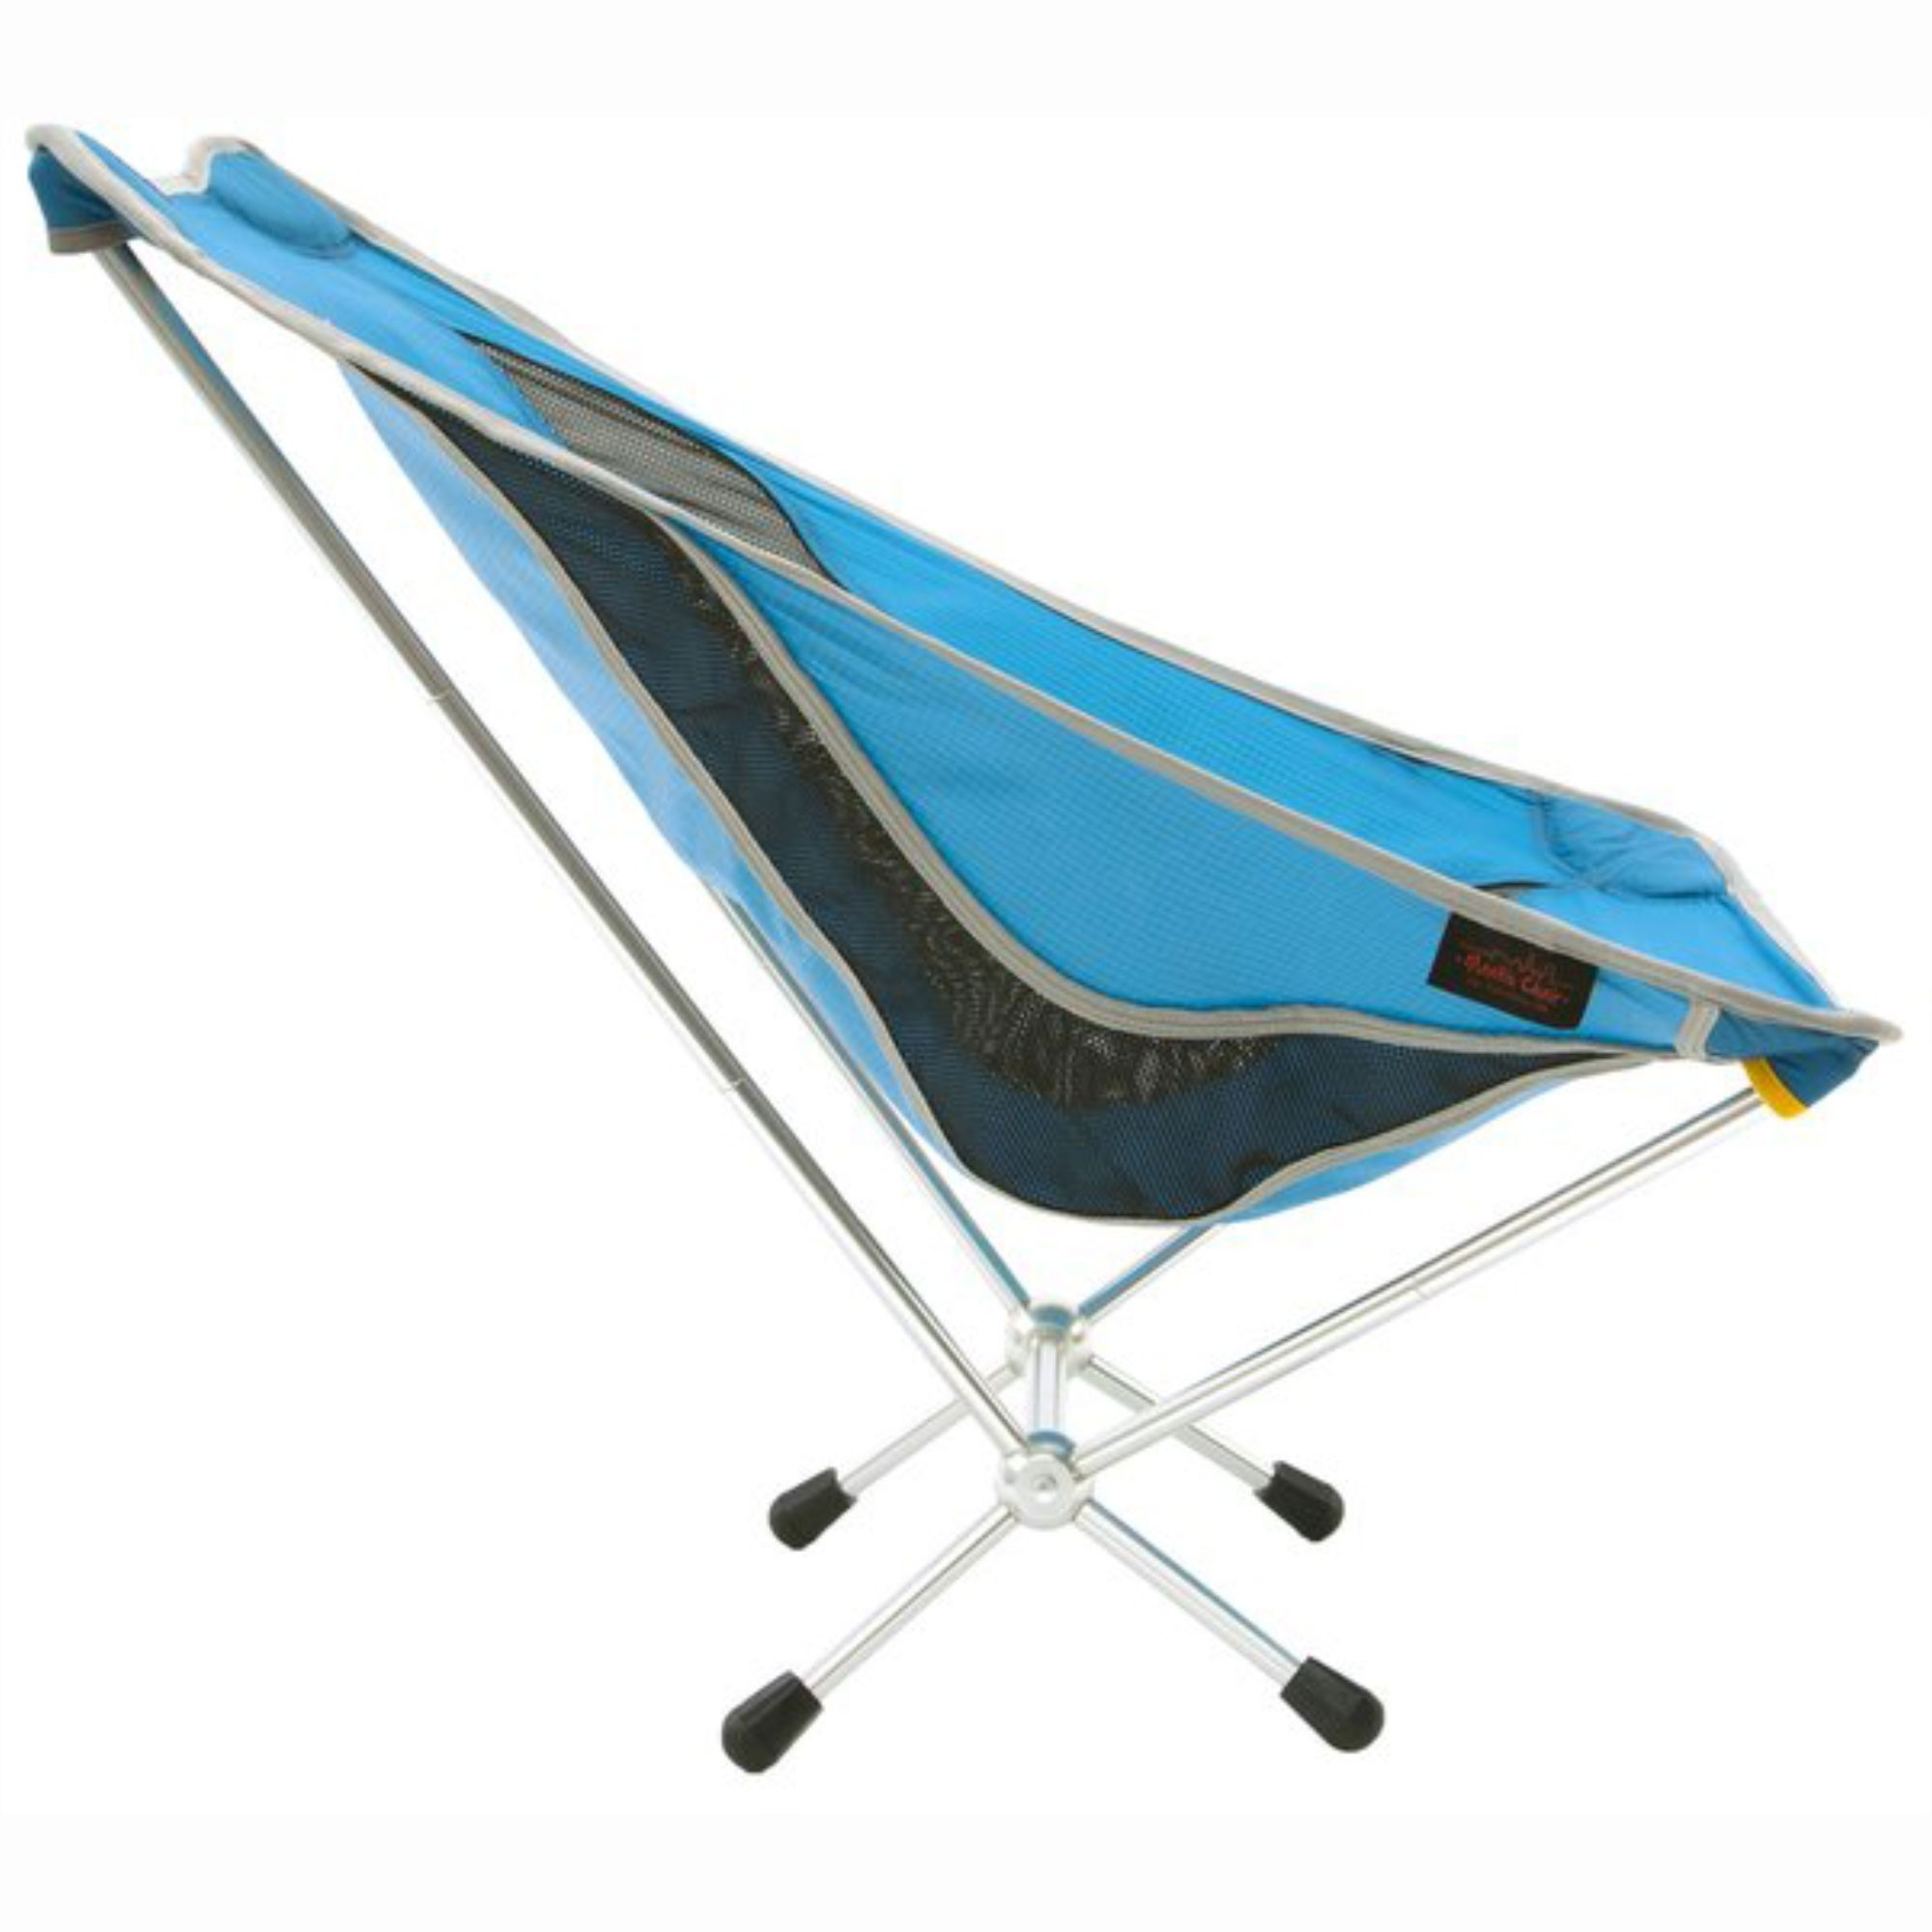 Alite-Designs-Mantis-Camping-Chair-Side-Capitola-Blue.jpg